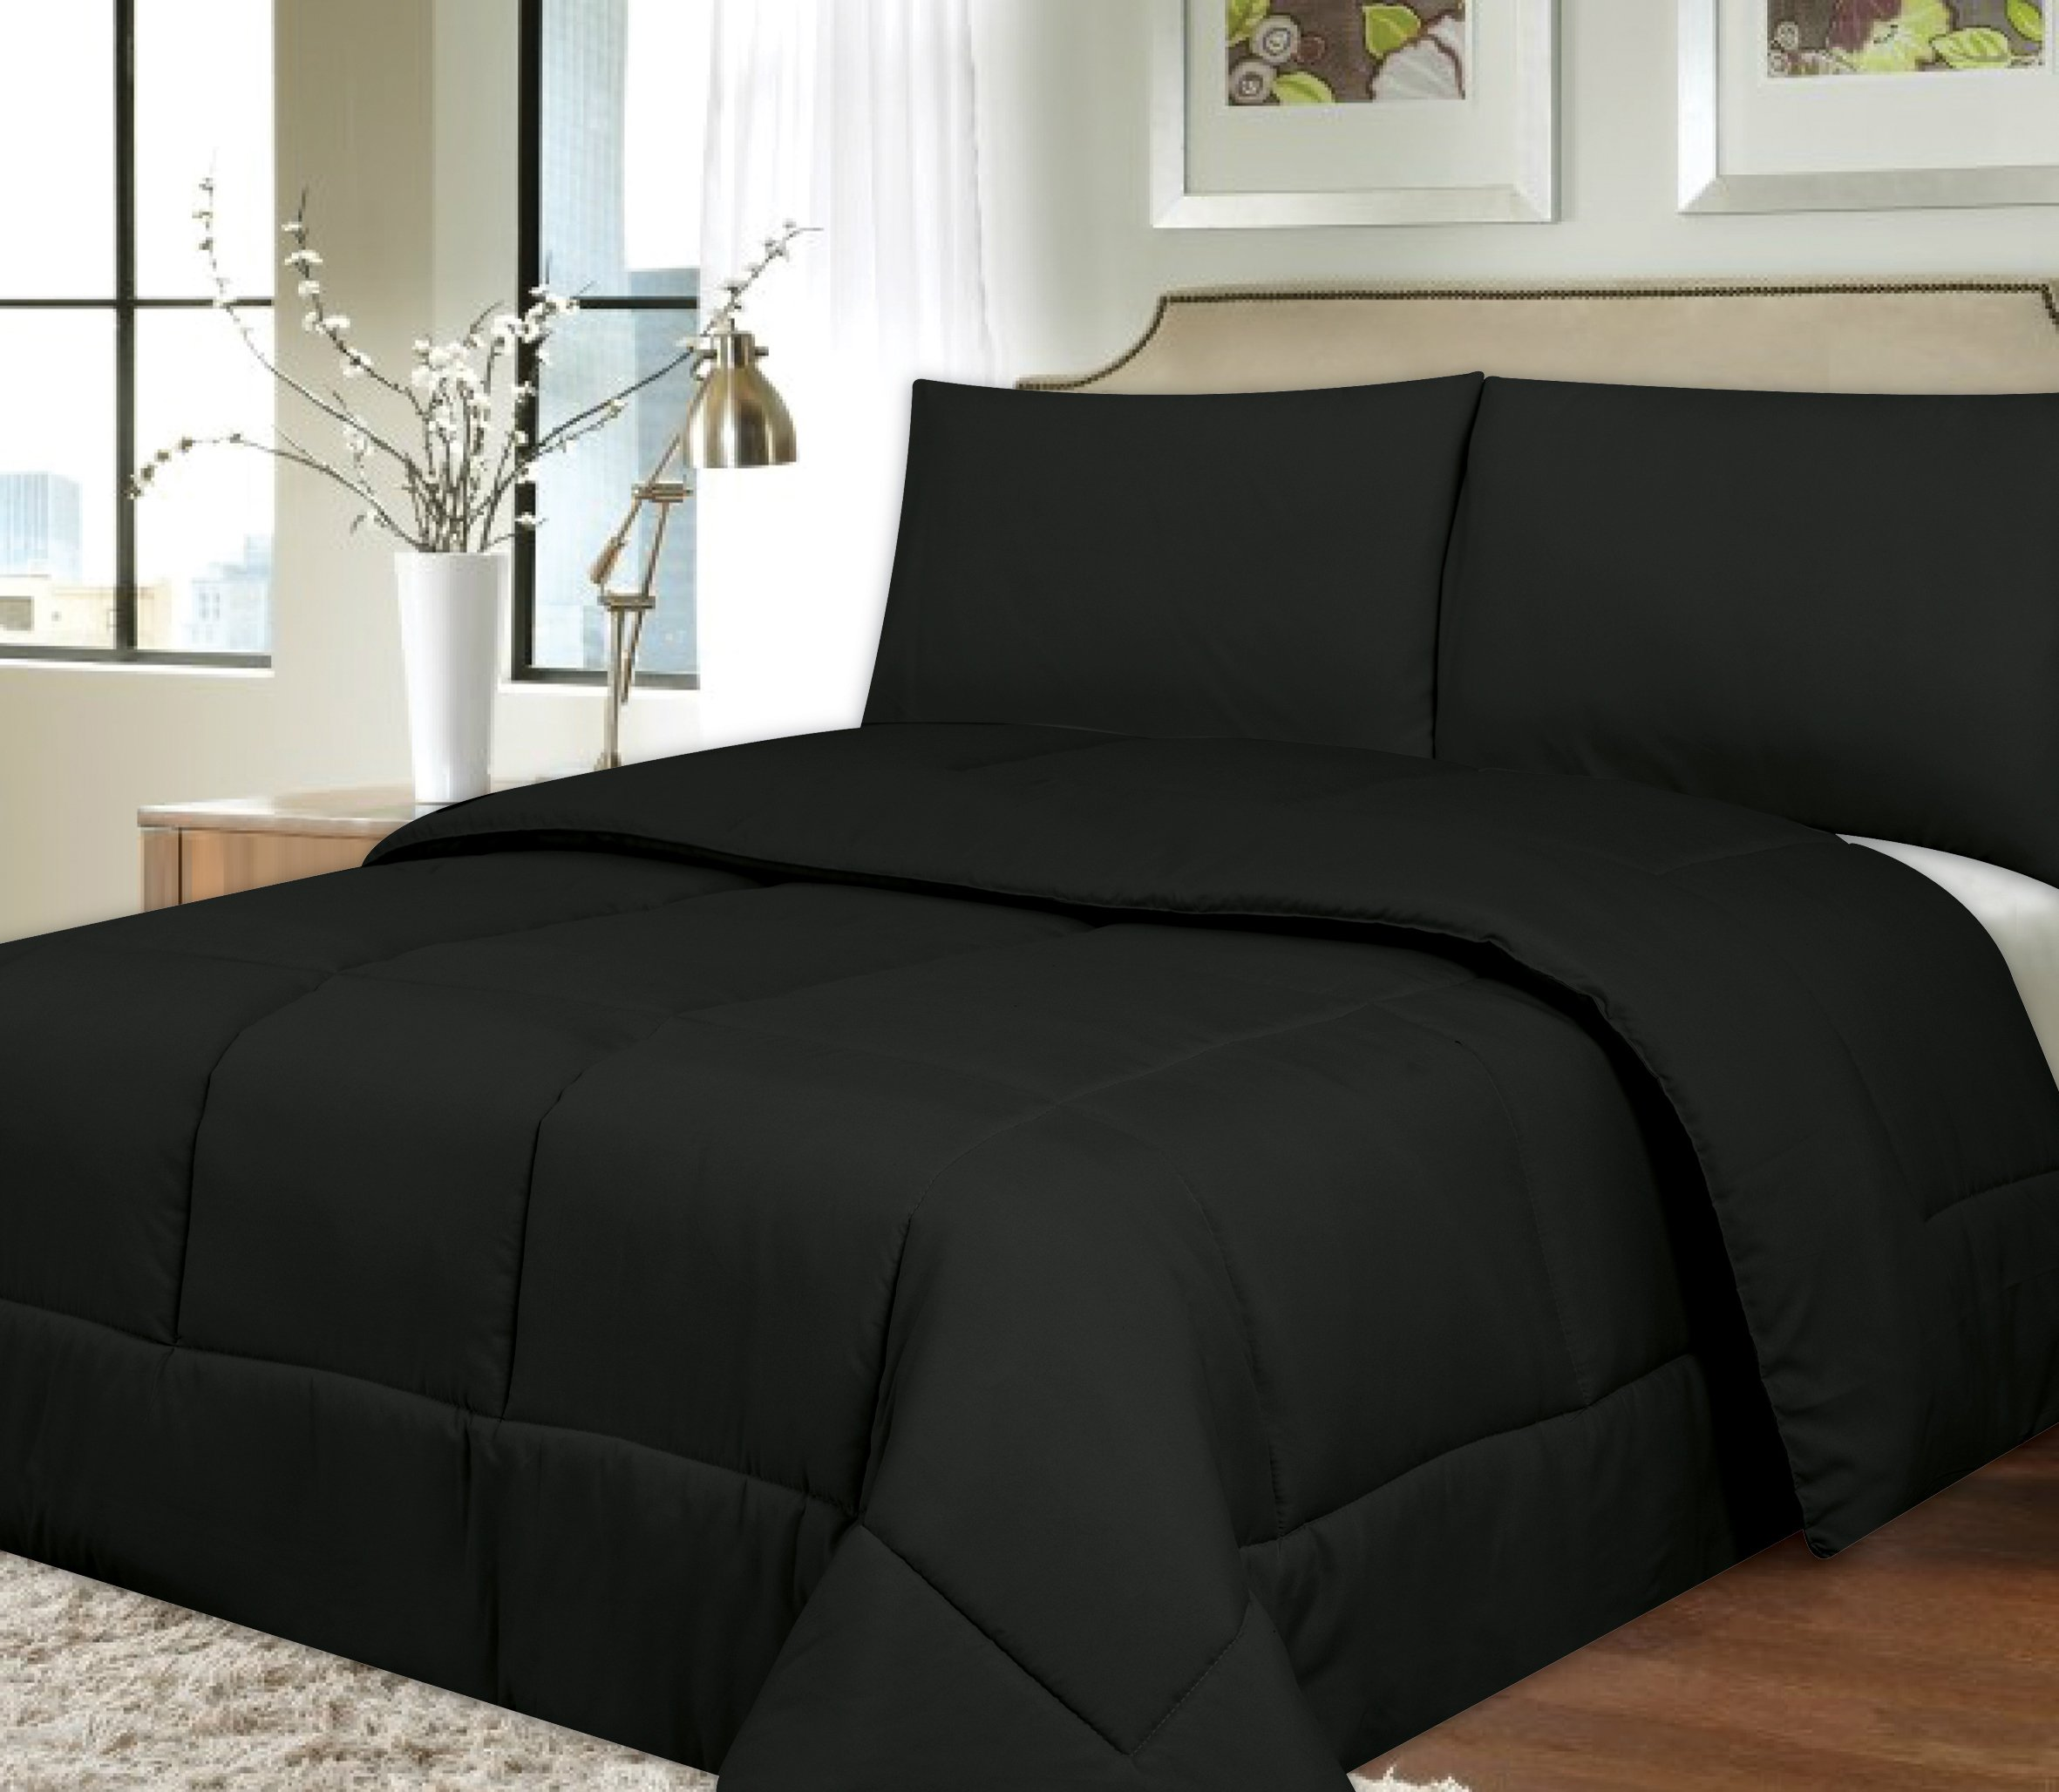 Sweet Home Collection Down Alternative Polyester Comforter Box Stitch Microfiber Bedding - Full, Black